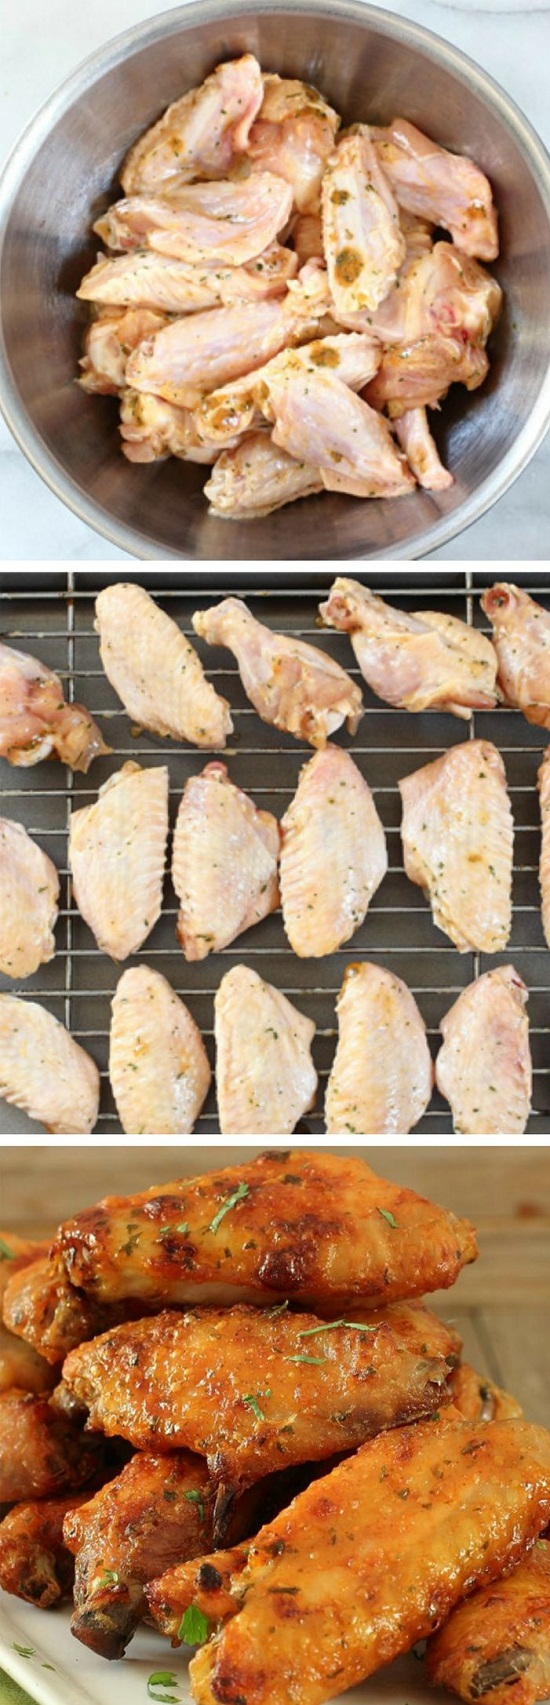 Incredibly-delicious-Baked-Chicken-Wings-Recipe